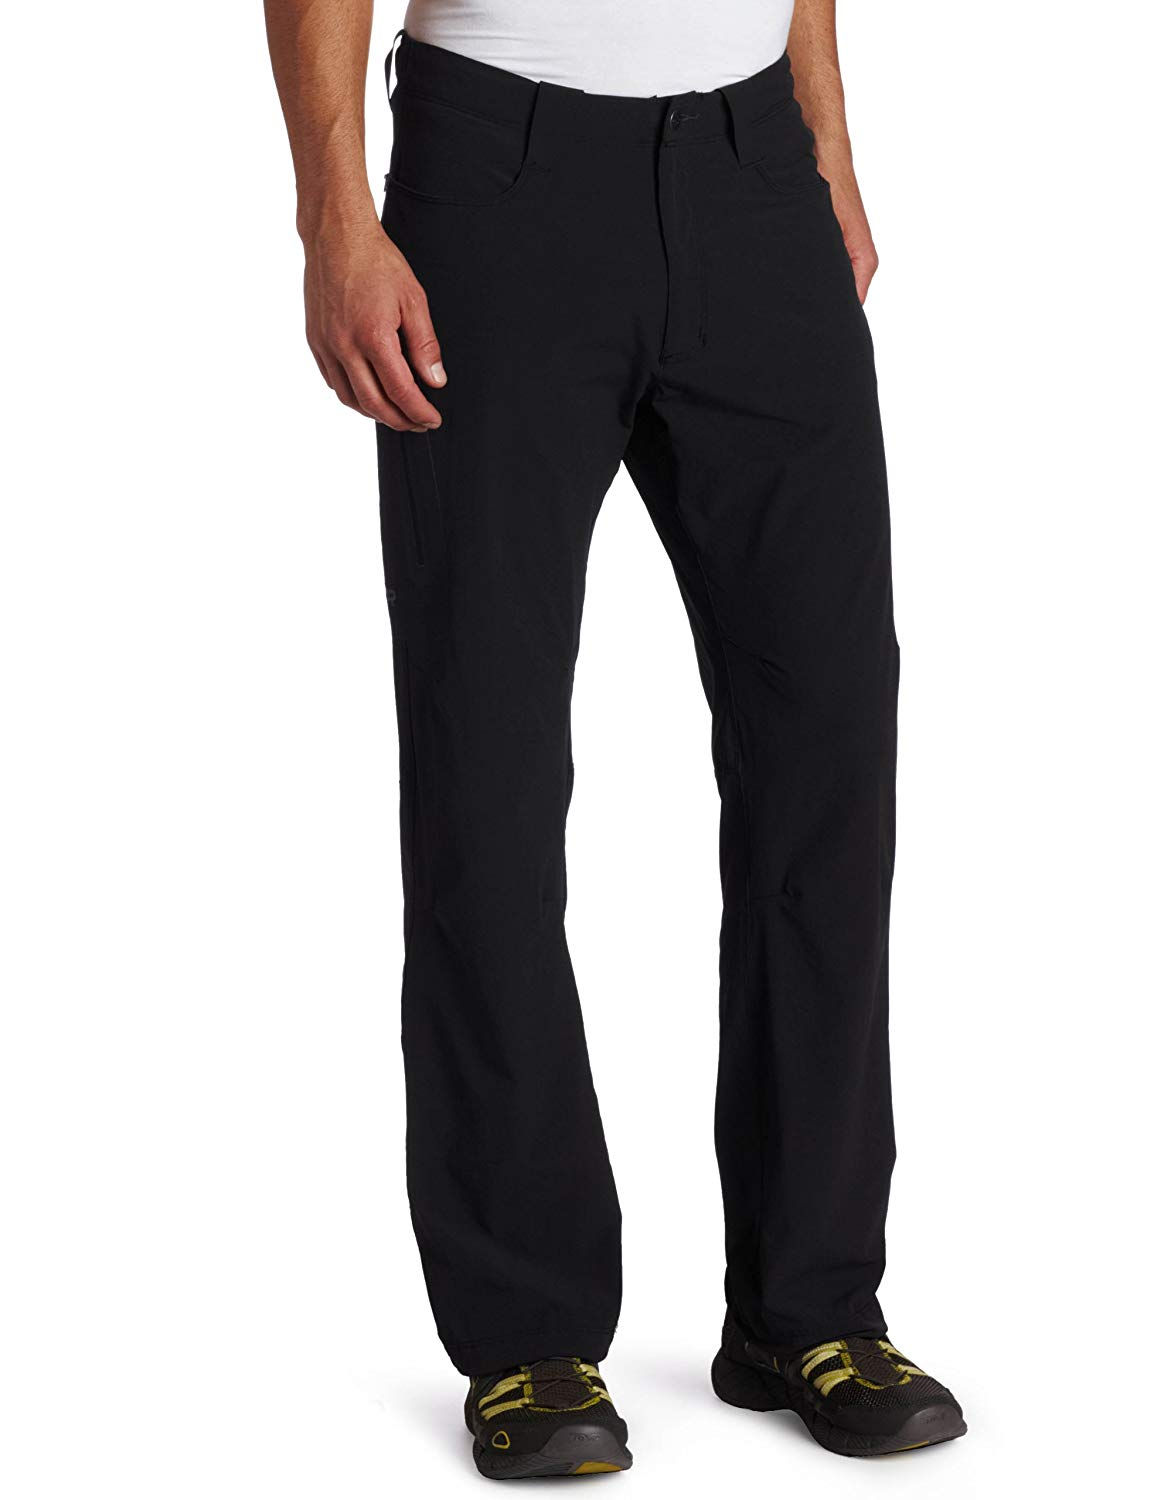 best hiking pants for men - Ferrosi